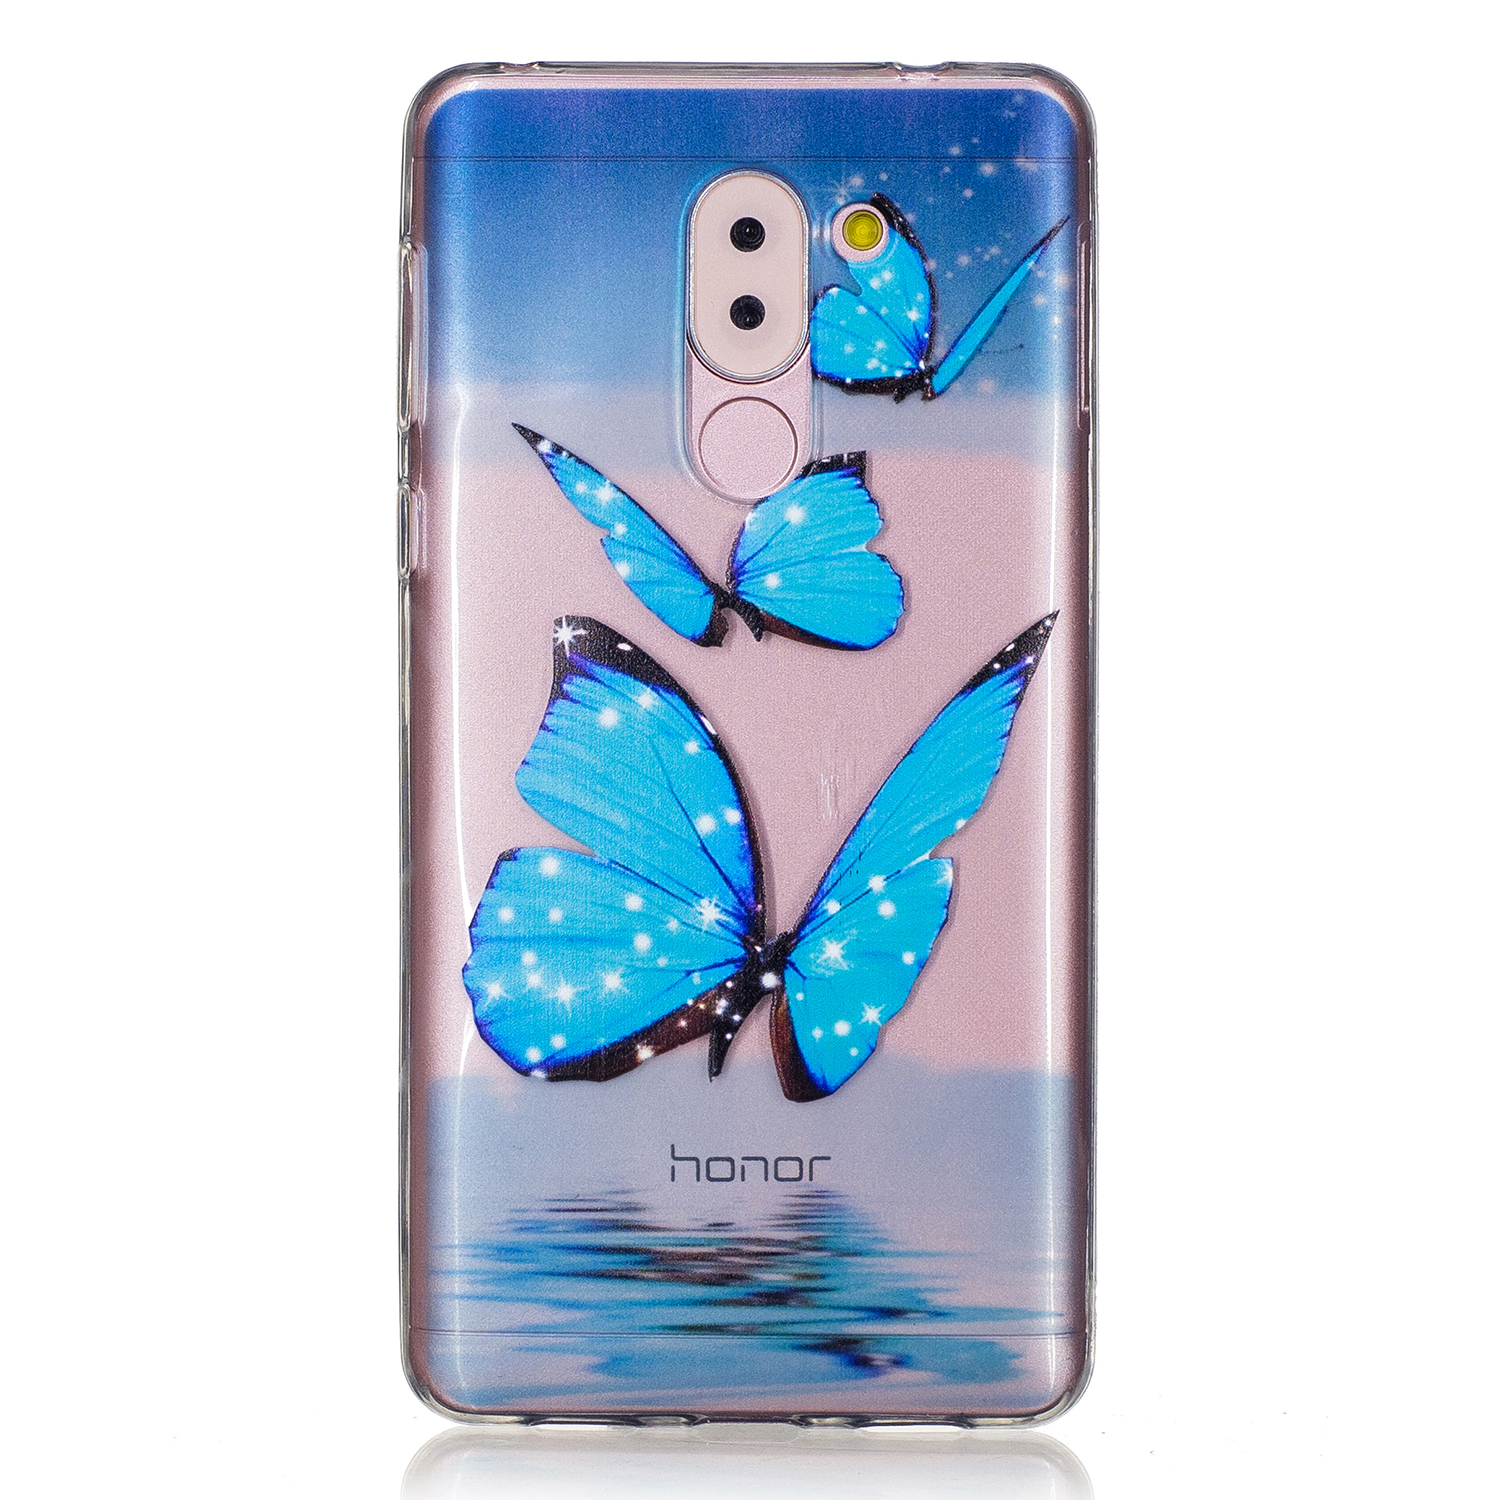 new products 63c04 46a92 Fashion Soft Beautiful TPU for Huawei Honor 6X Case Silicon Back Cover  Honor 6X Phone Case TPU Soft For Coque Huawei Honor6X 6 X-in Half-wrapped  Case ...